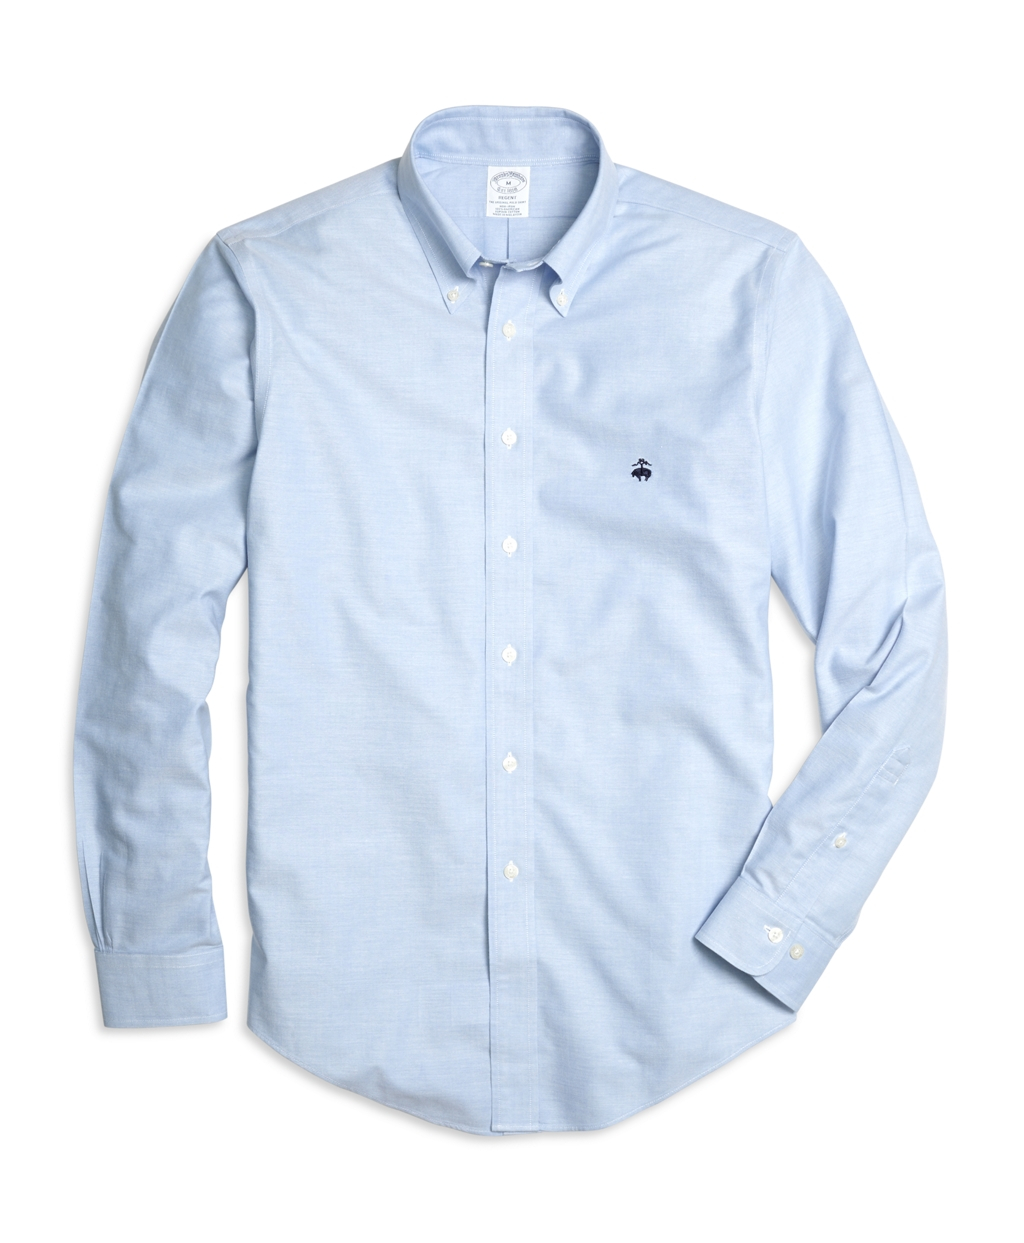 Brooks brothers non iron regent fit oxford sport shirt in for Brooks brothers dress shirt fit guide